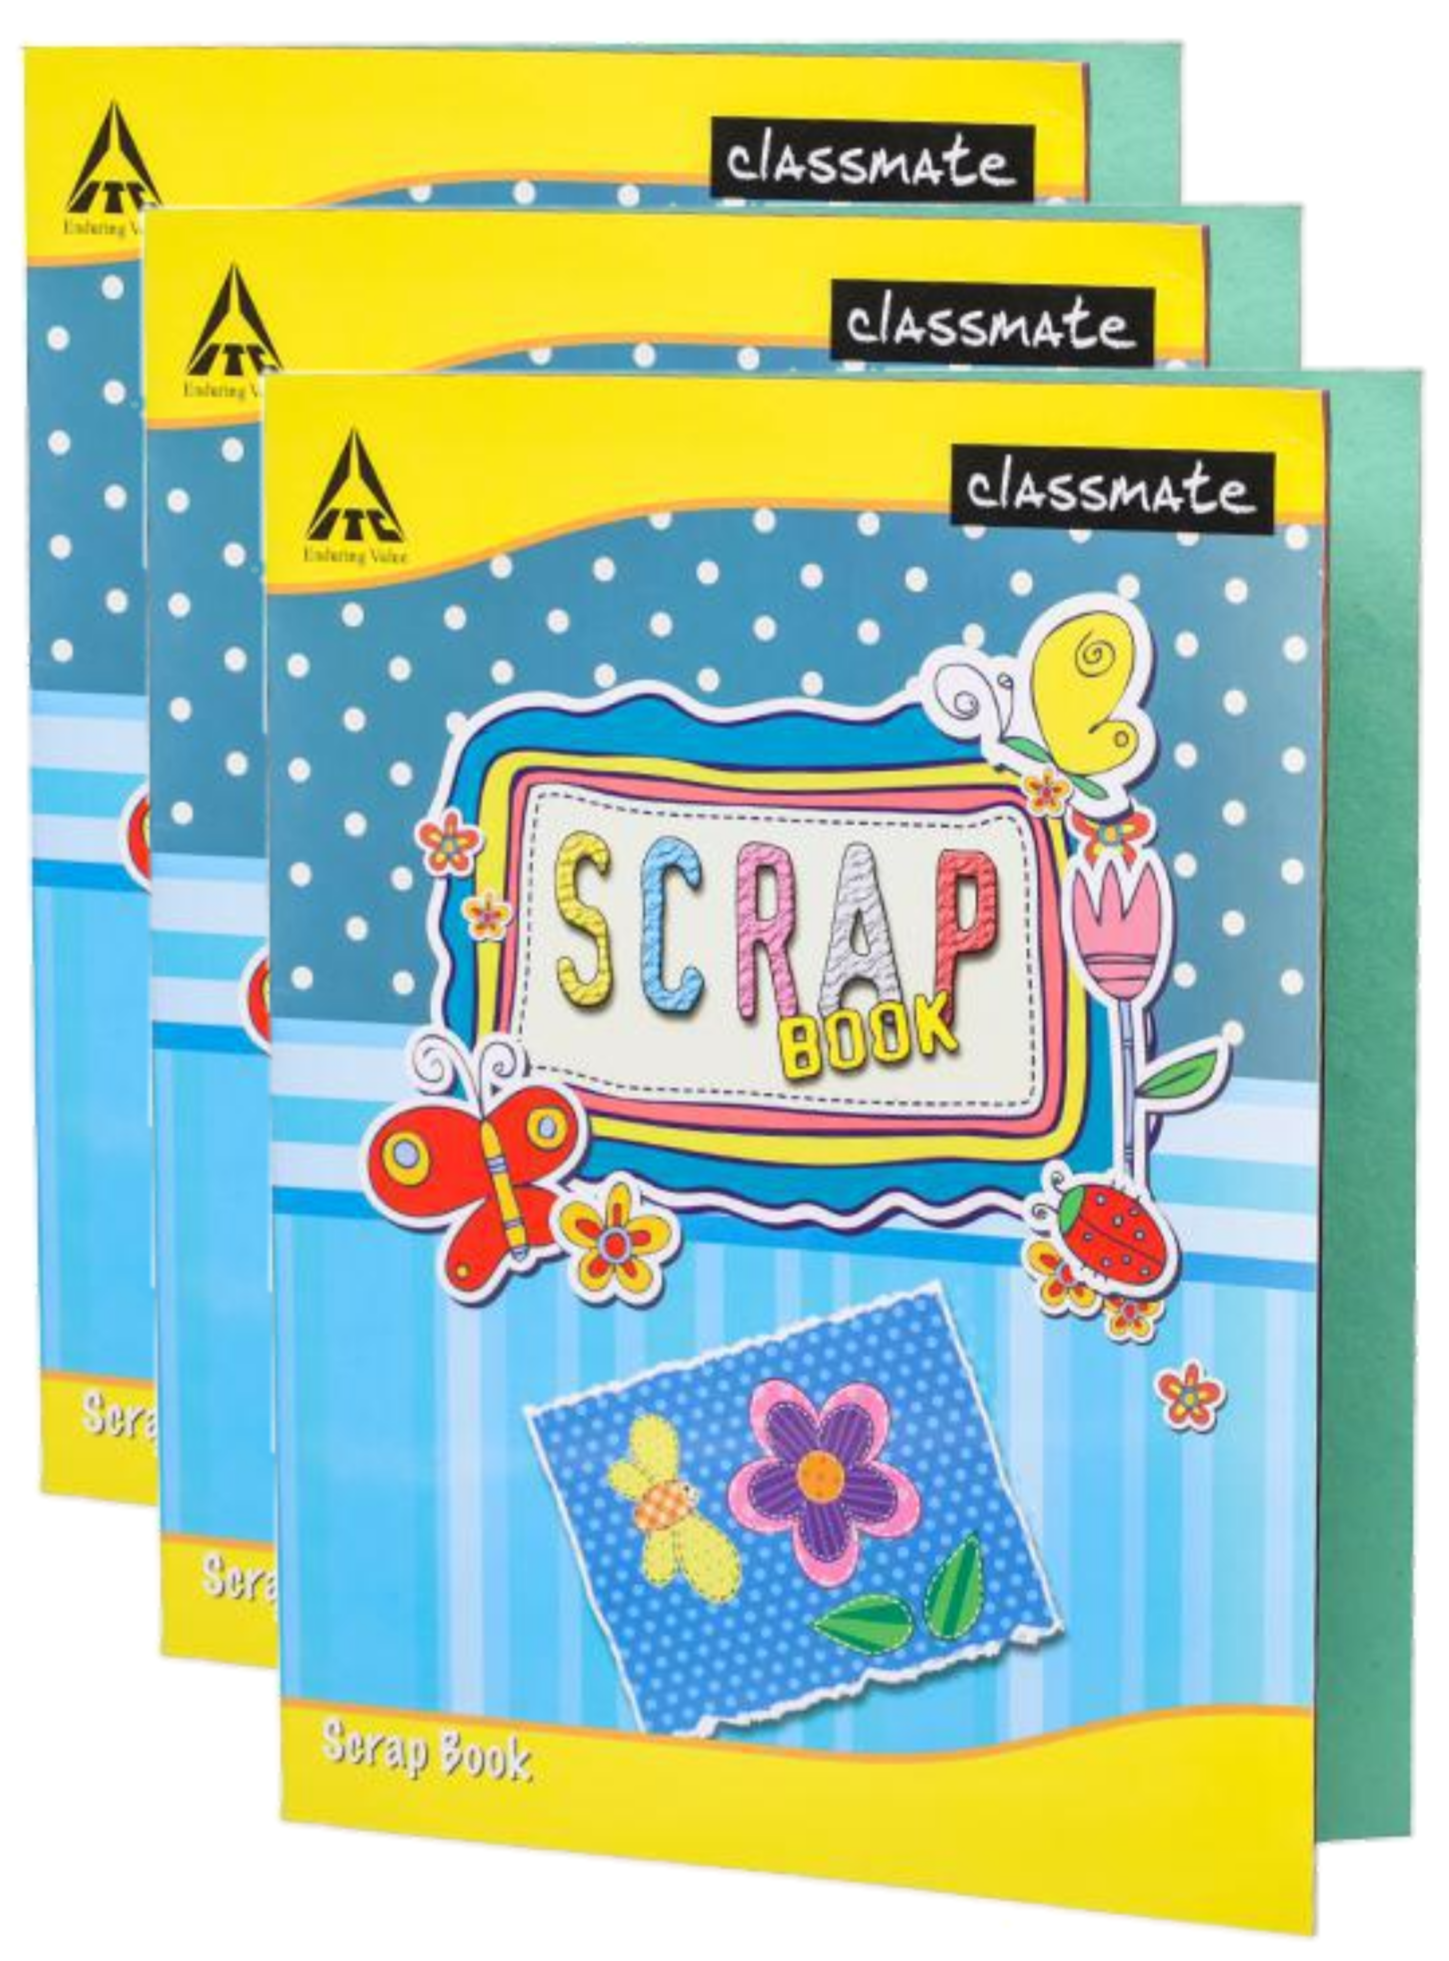 Classmate Scrap Book Soft Cover 32 Pages 28X22 cm Unruled Pack of 3